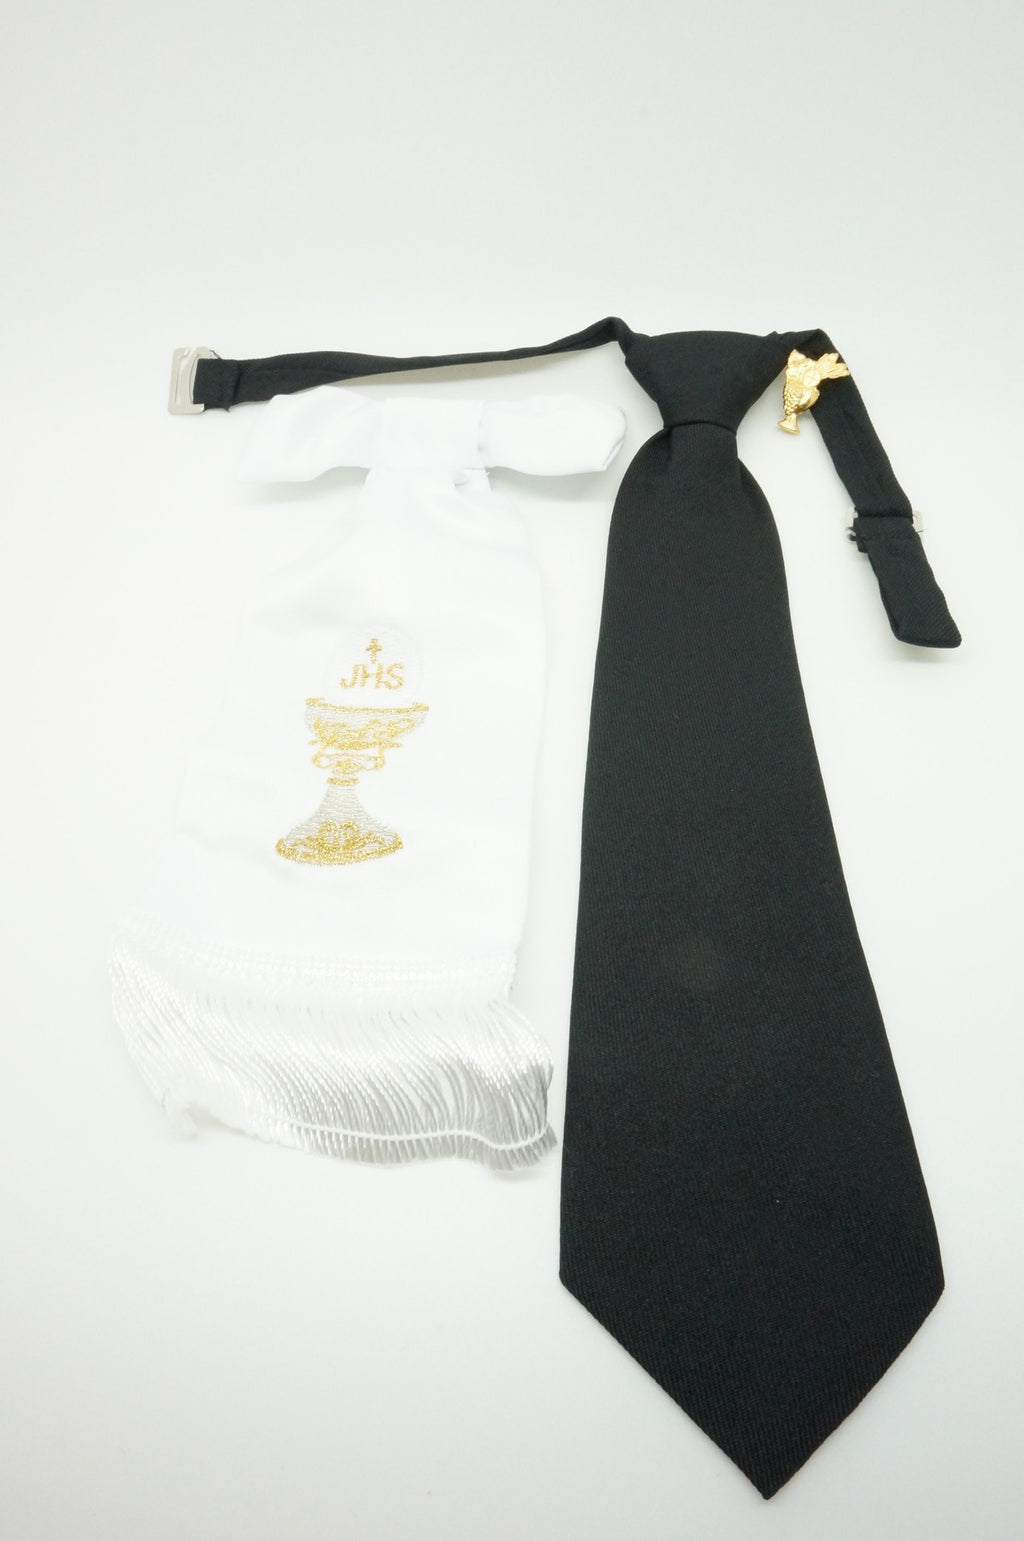 Boy's First Communion Set: White Arm Band, Pin and Black Tie - Unique Catholic Gifts